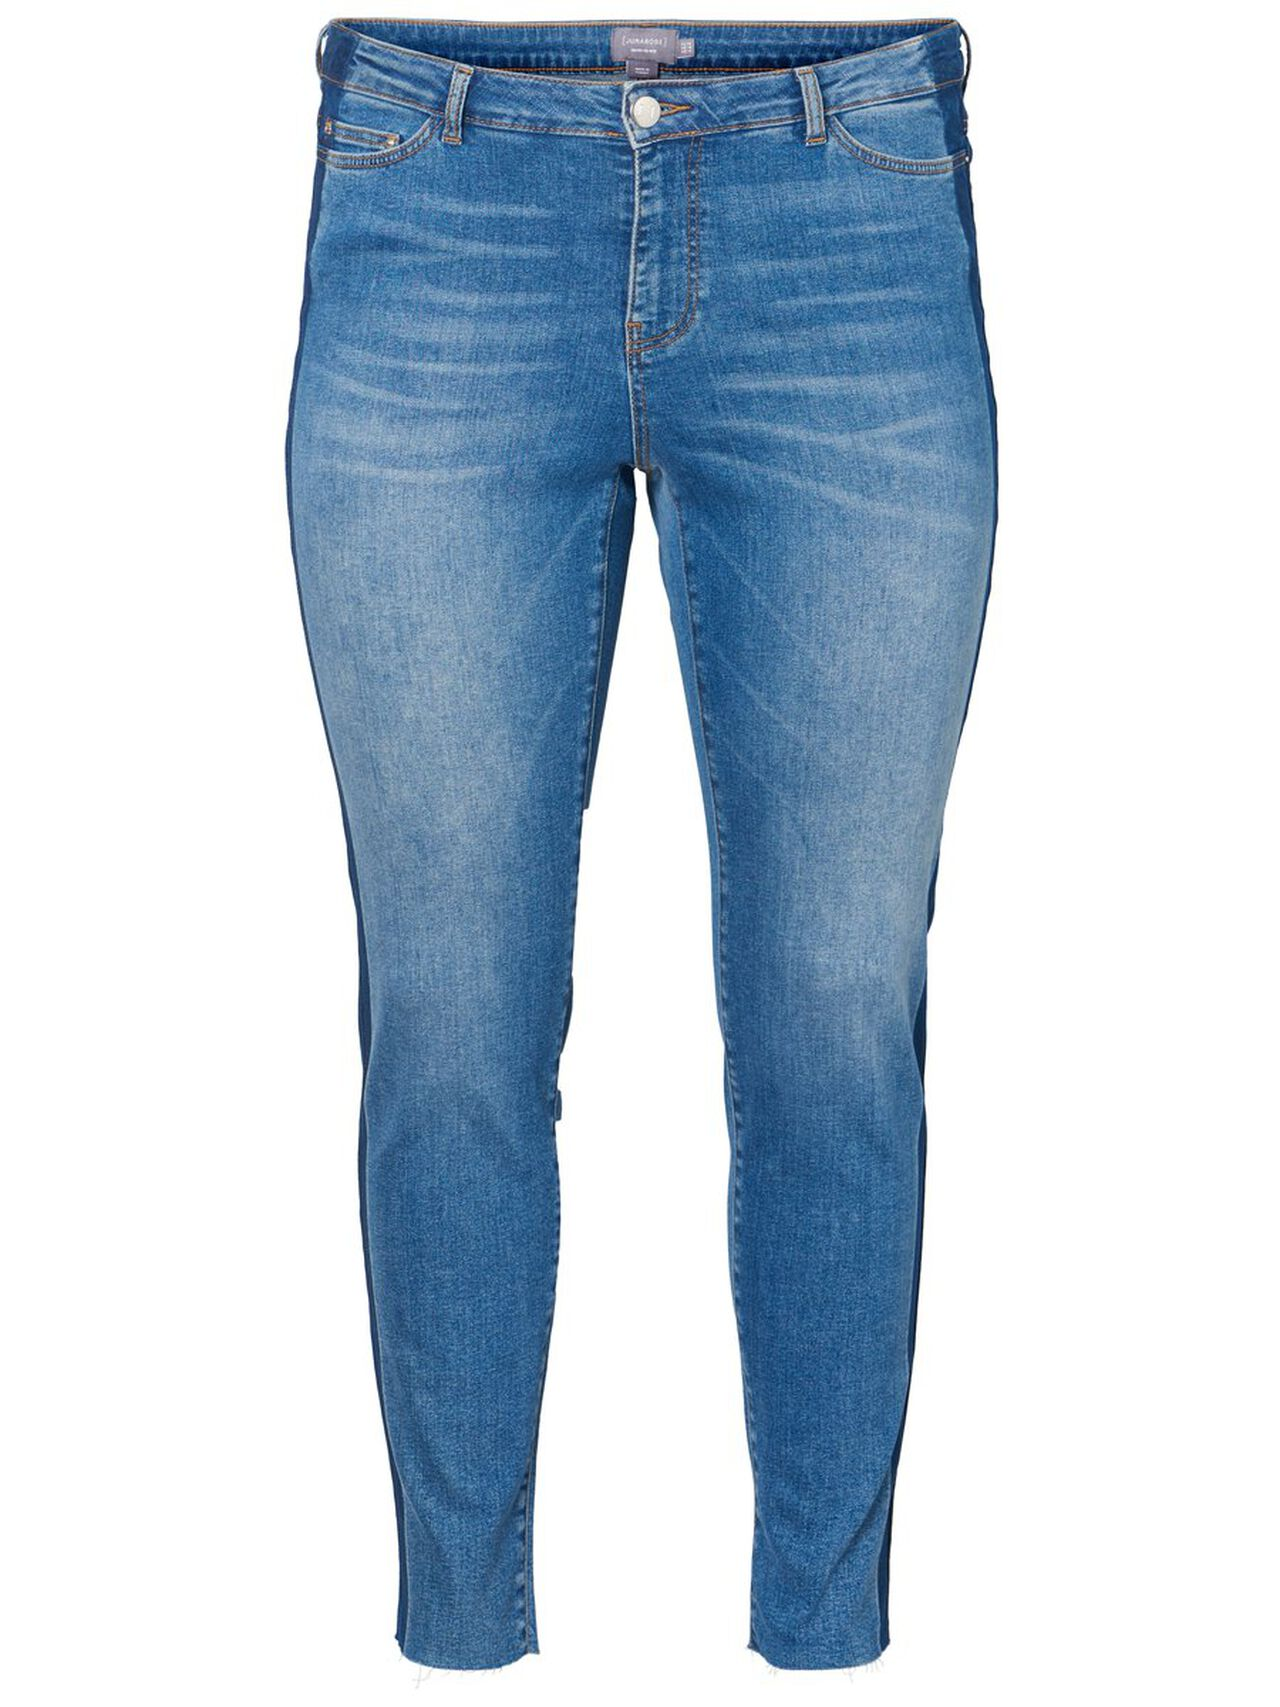 JUNAROSE Cropped Slim Fit Jeans Damen Blau